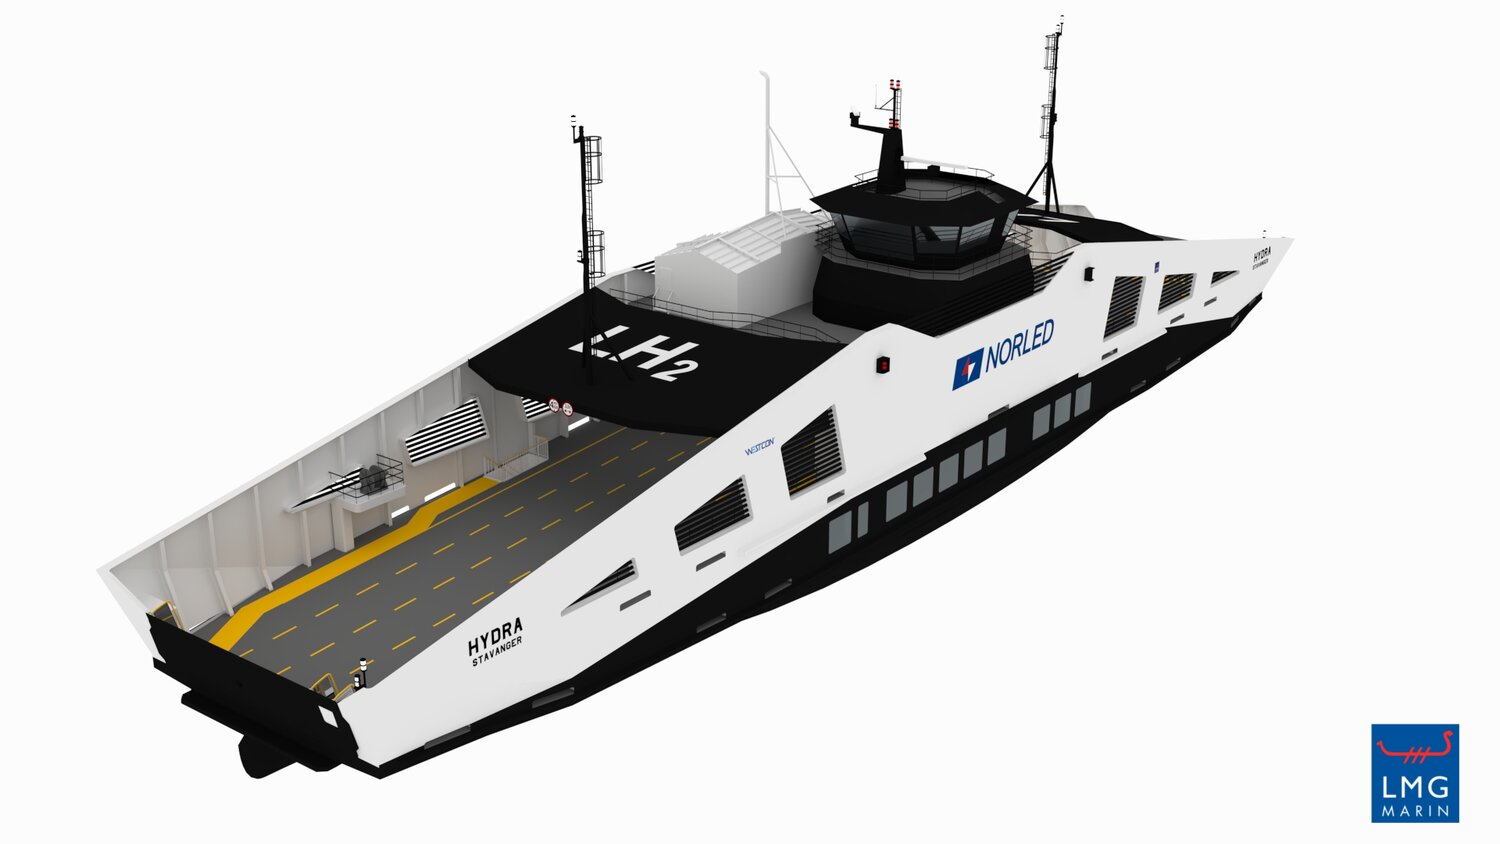 The world's first hydrogen car ferry is coming to Norway - CapMan